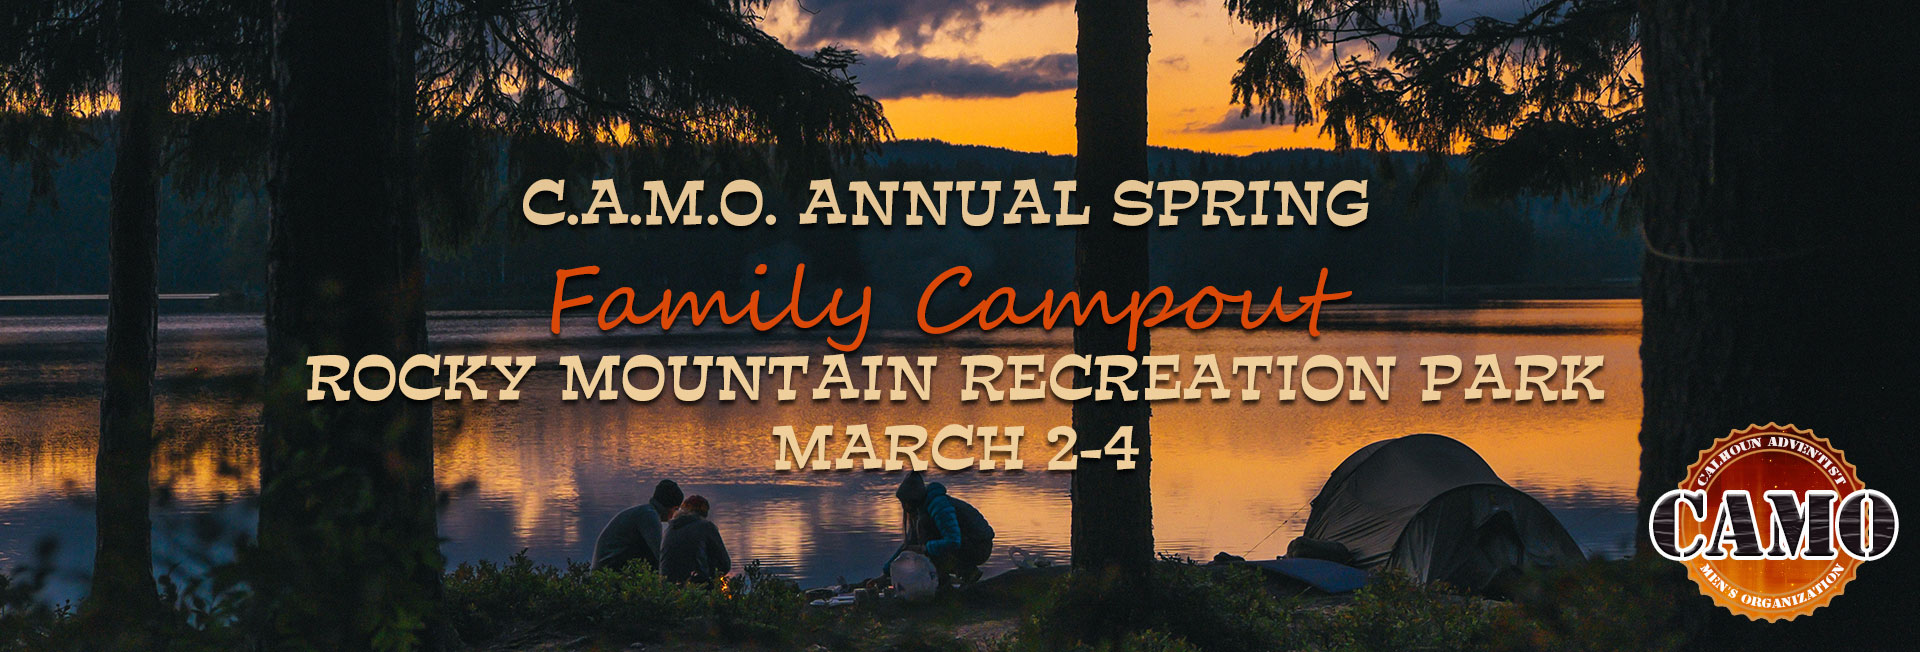 Join the Calhoun Adventist Men's Organization for their Annual Spring Family Campout March 2-4